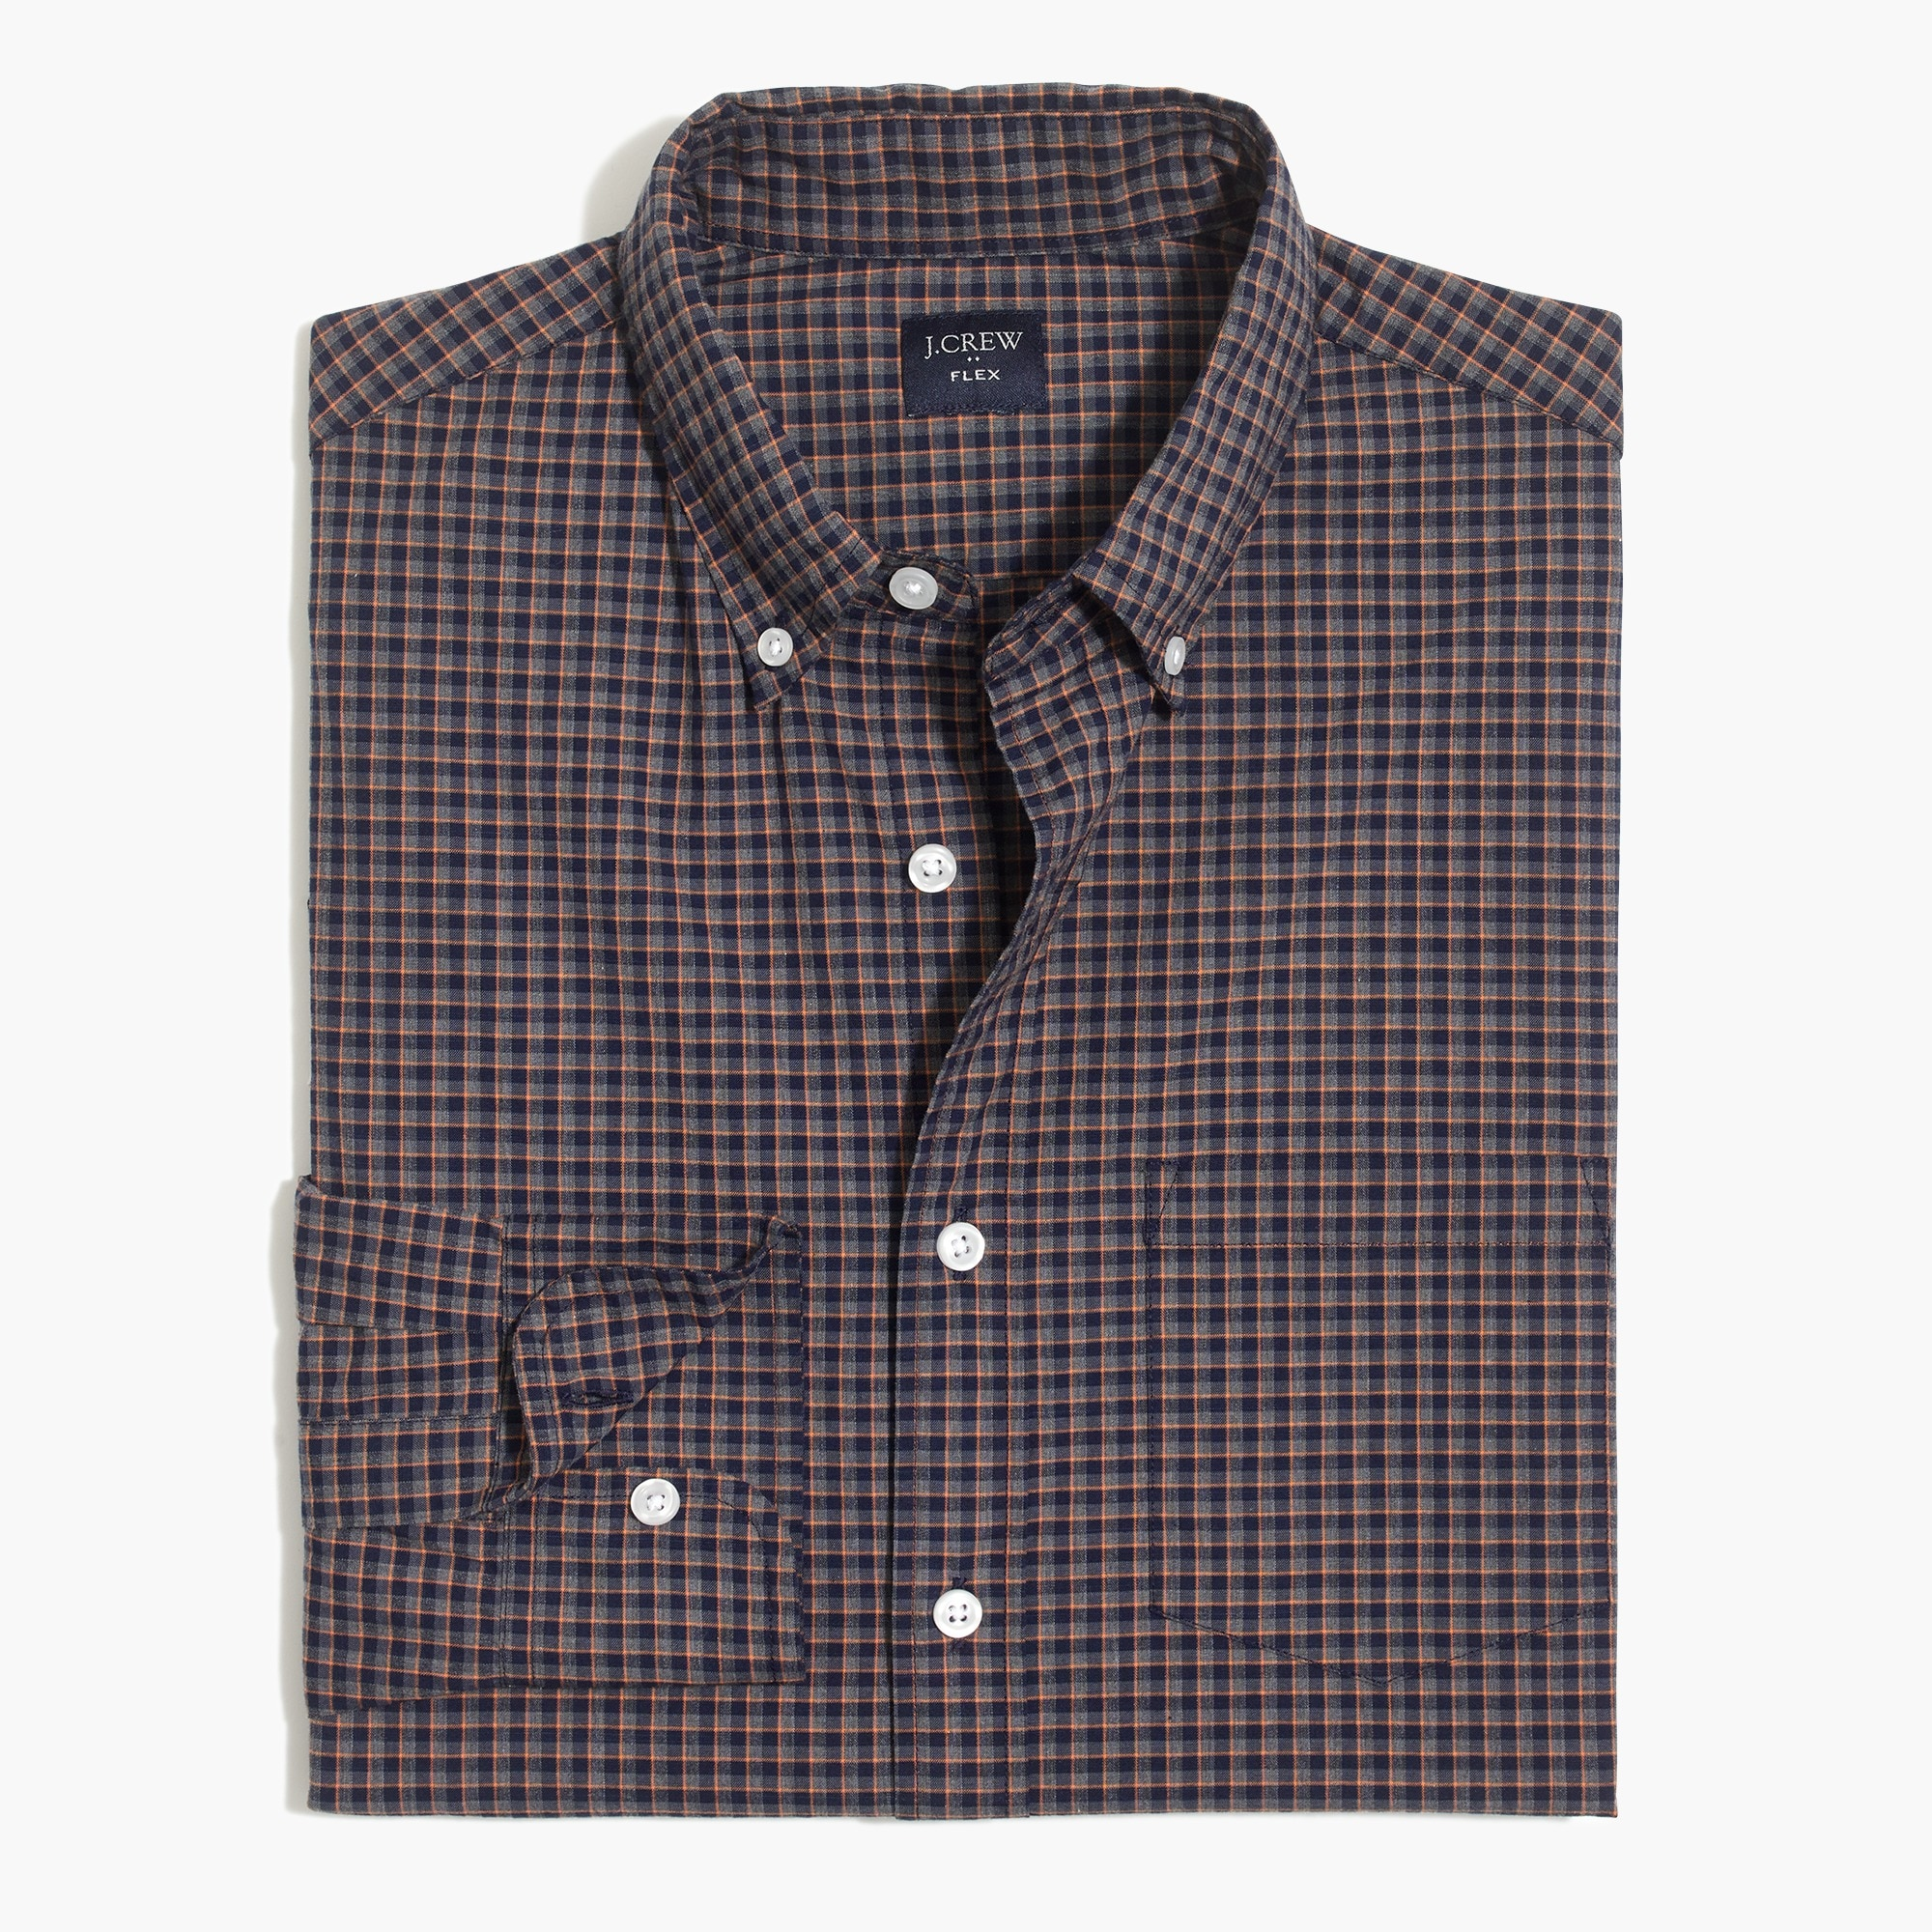 Image 2 for Classic flex heather washed shirt in tattersall